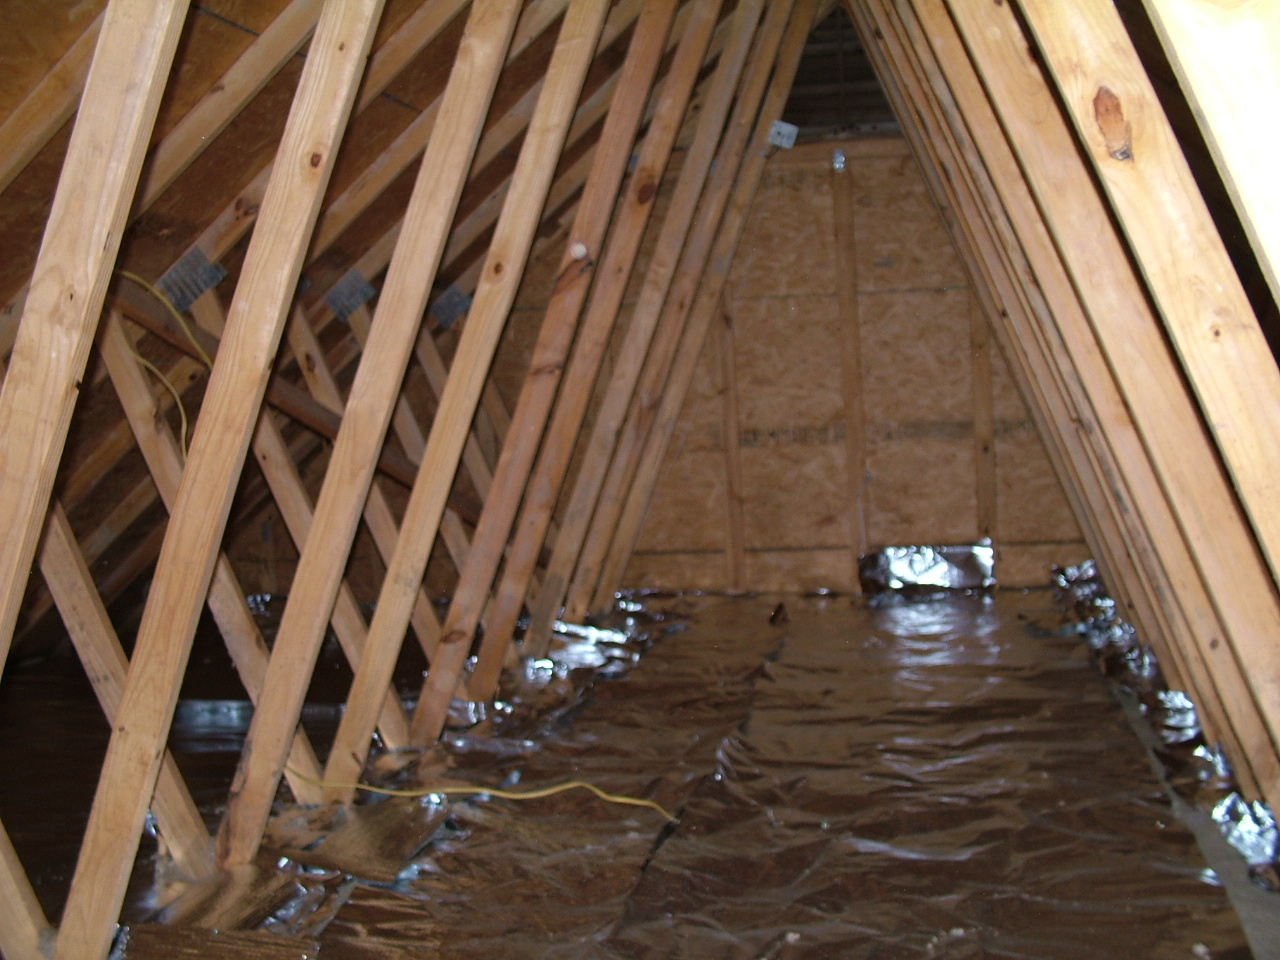 The Radiant Barrier Foil Insulation Guru Helps Lower Energy Costs